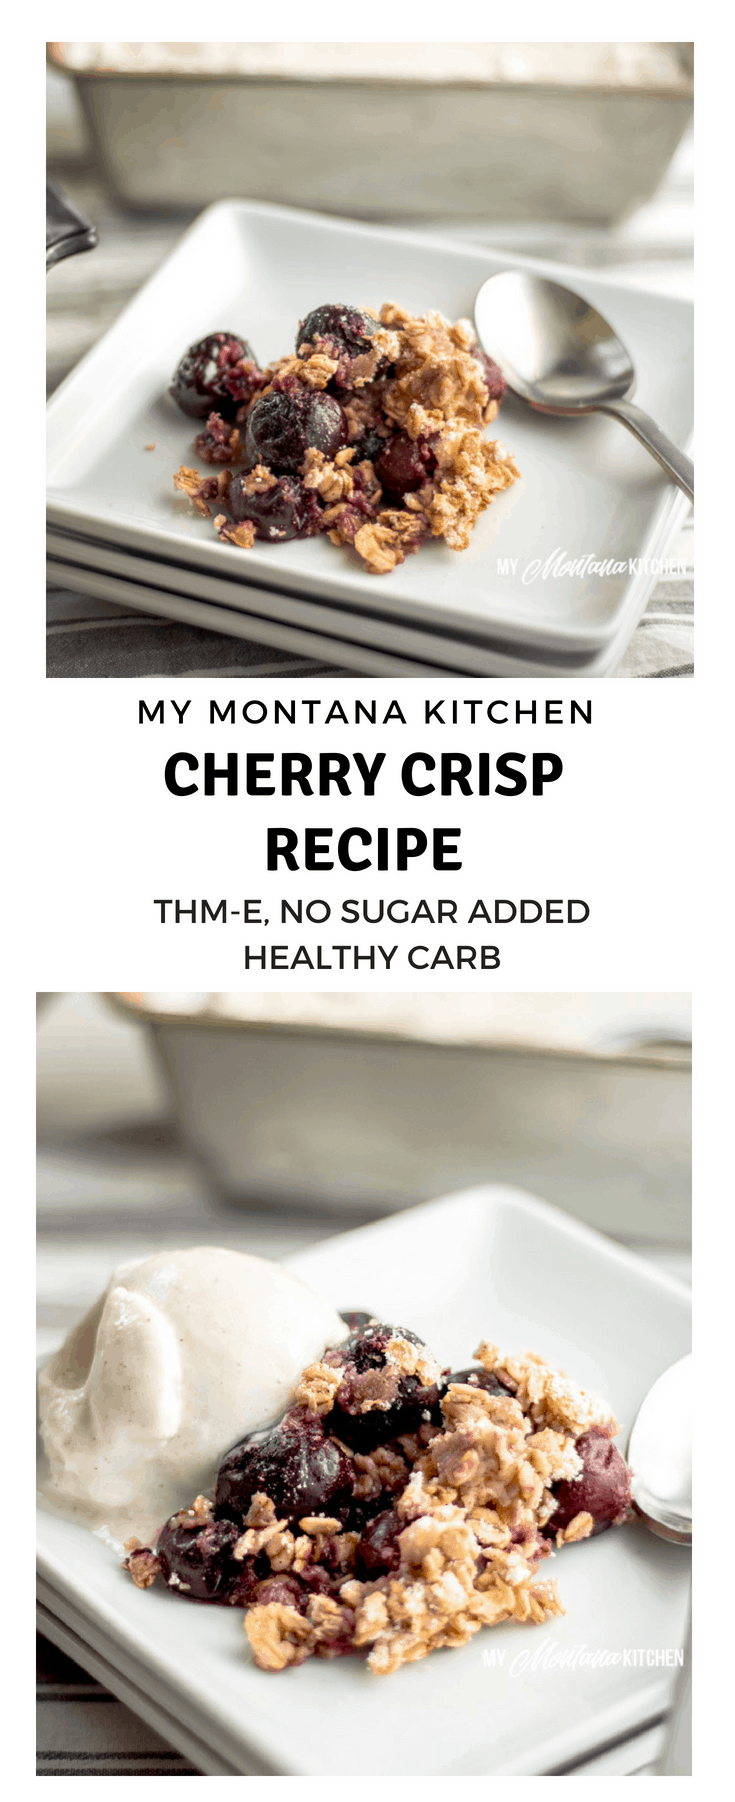 Sweet cherries topped with an easy oatmeal crust. This Cherry Crisp Recipe is easy to make and is a great way to use frozen cherries for a delicious Trim Healthy Mama E Dessert.